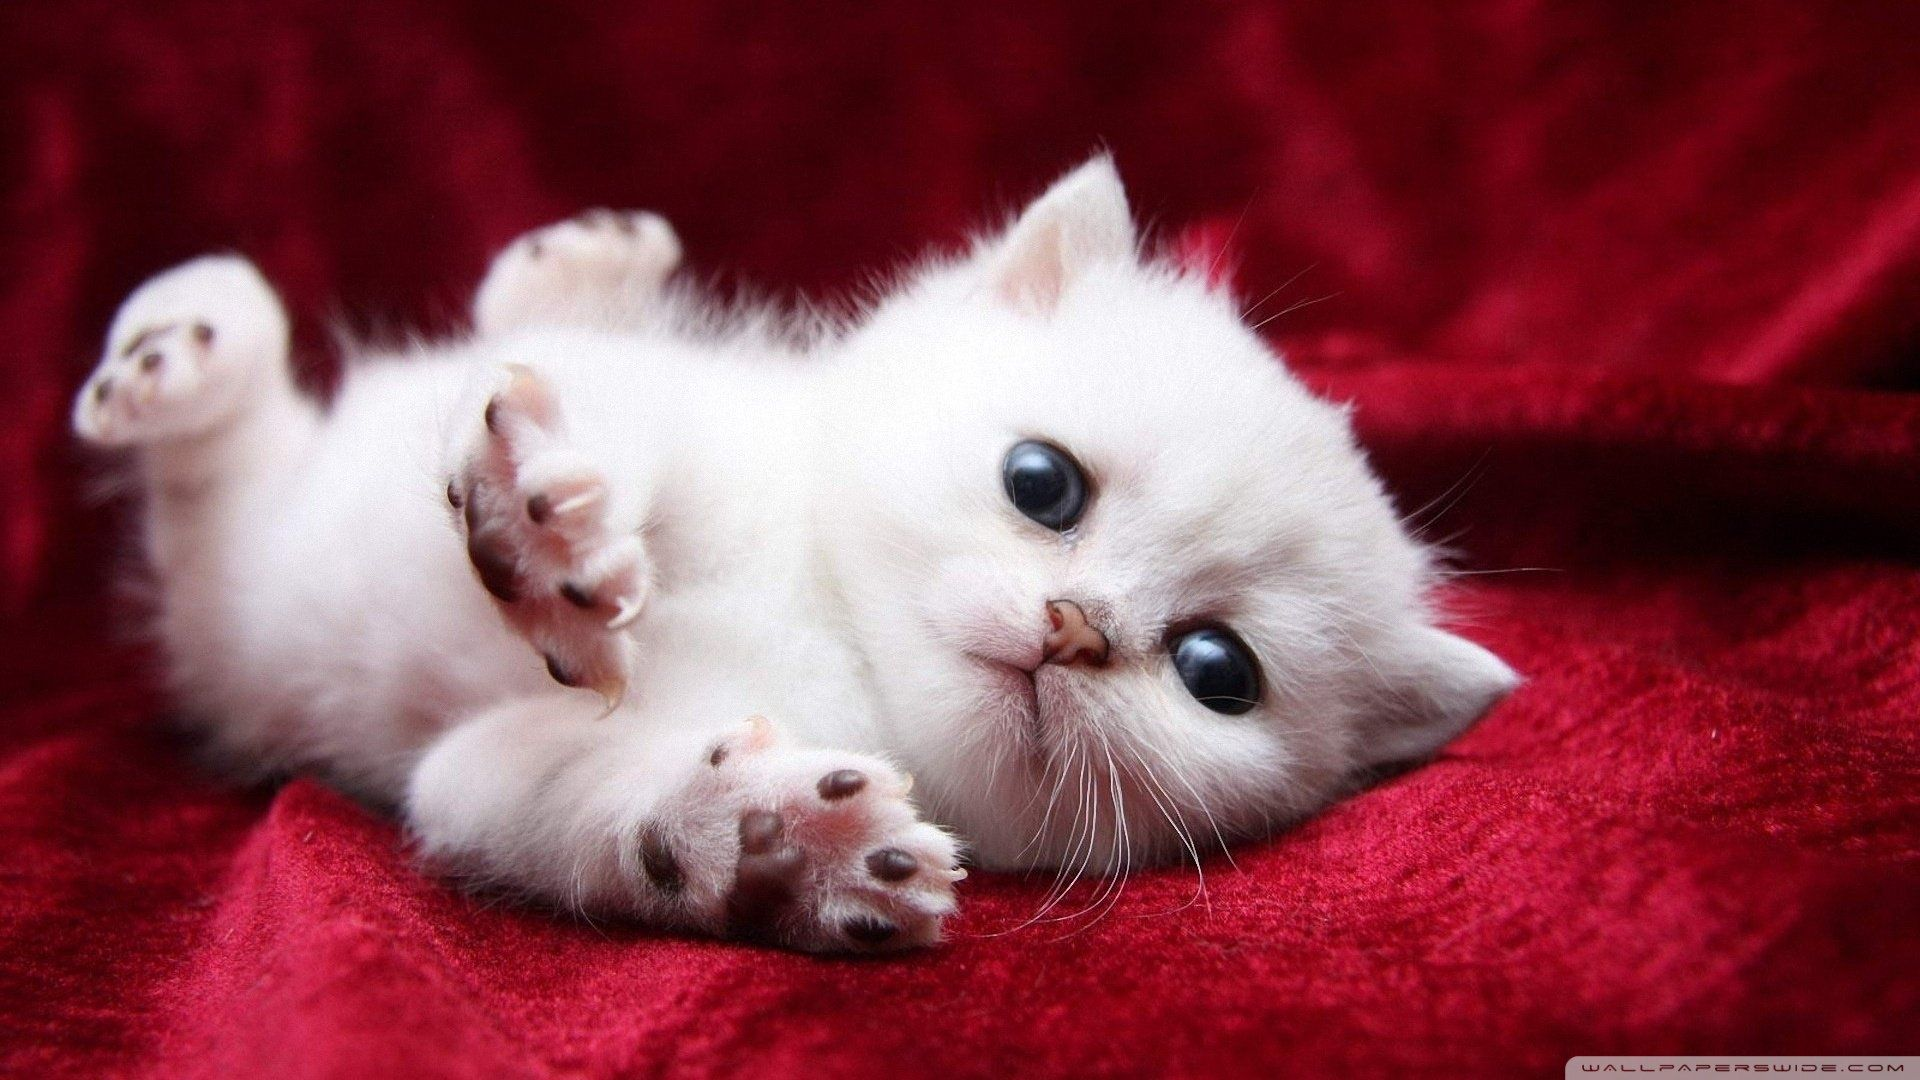 18 Adorable Kitty Cat Wallpapers Kittens Cutest Baby Cats Cute Baby Cats